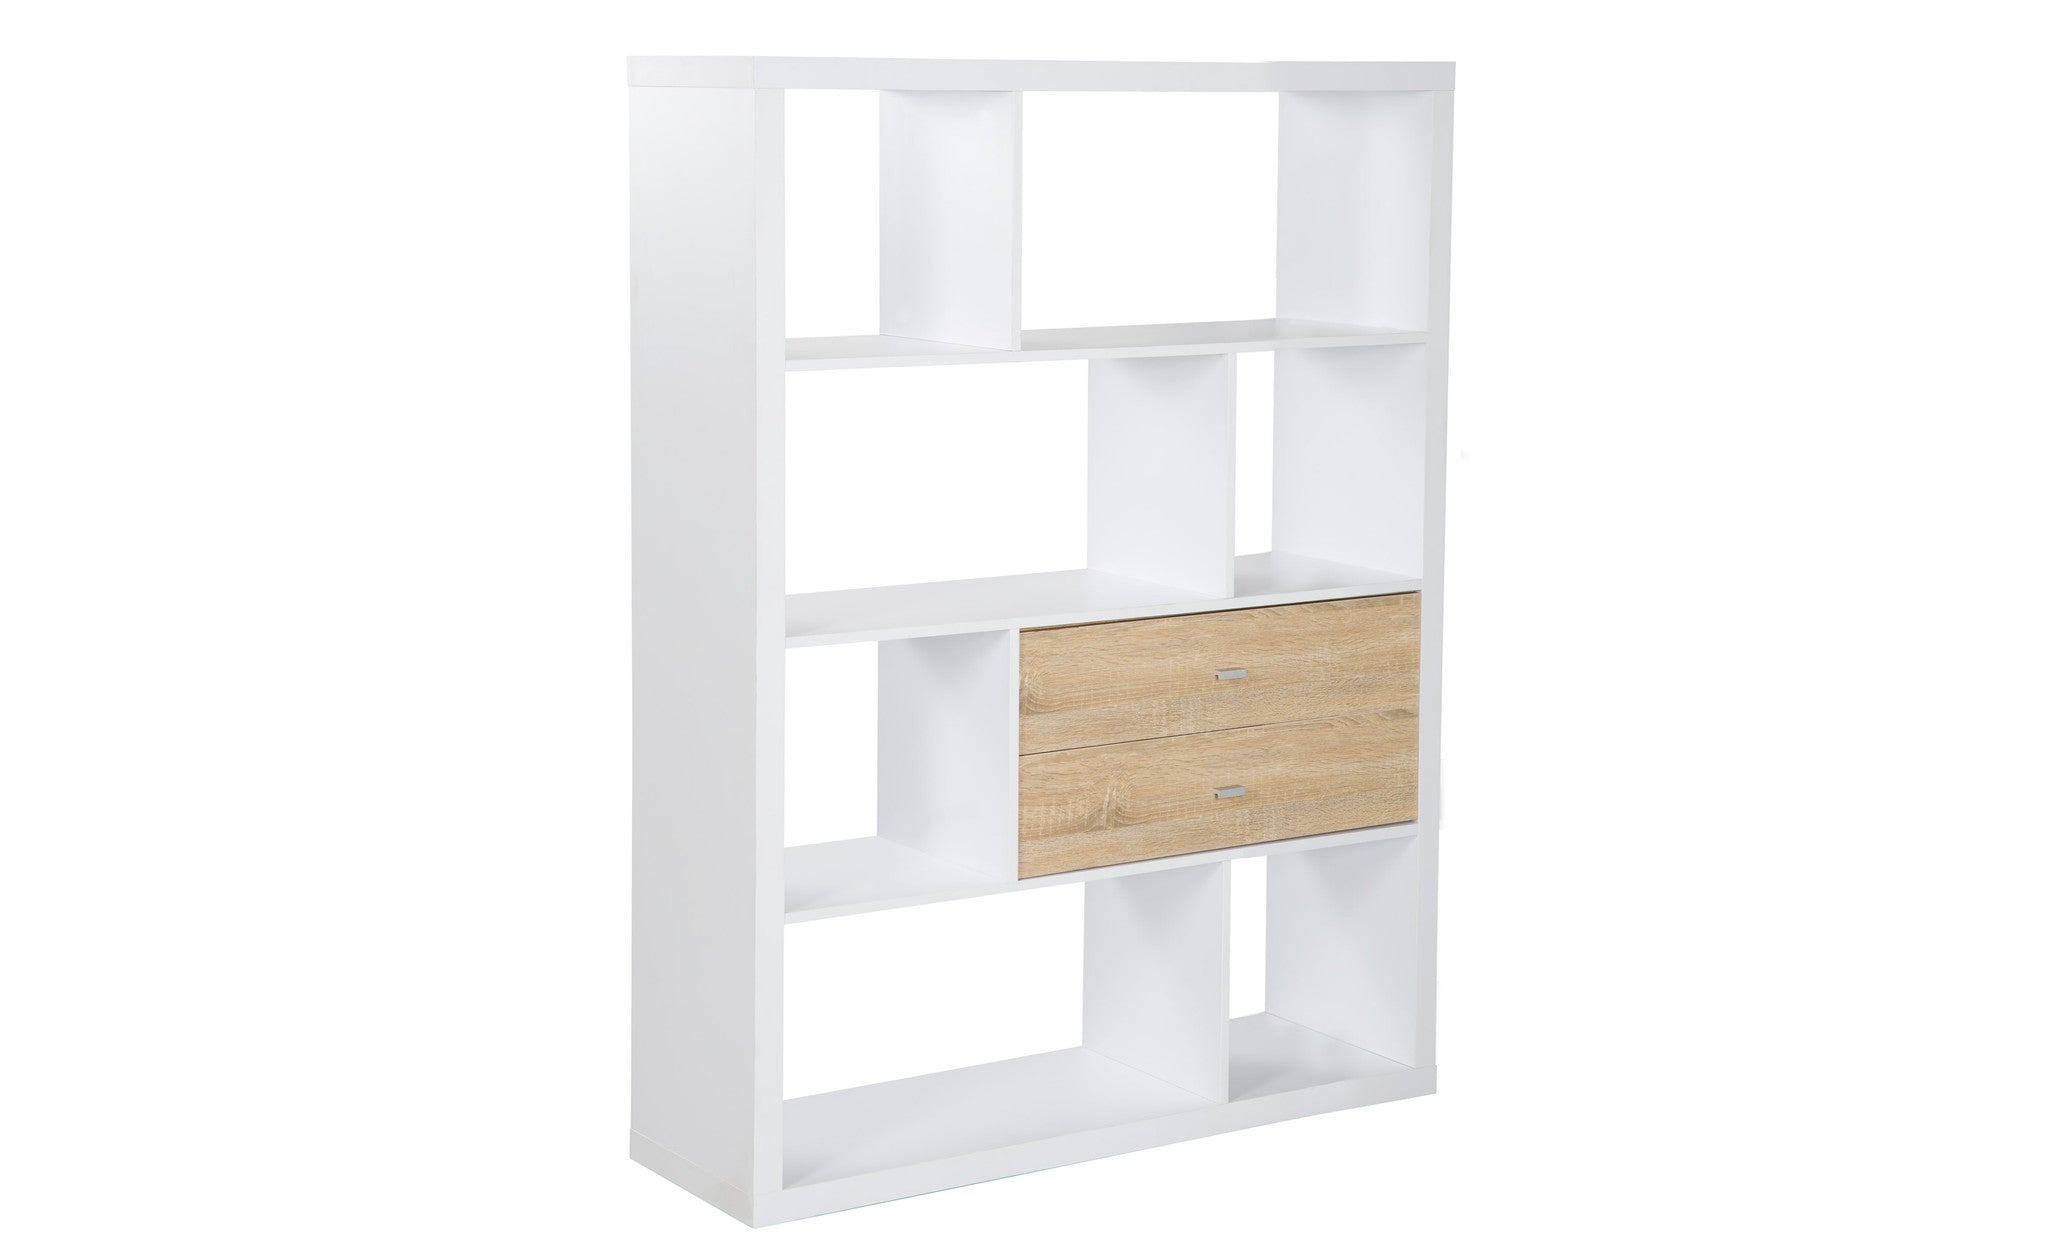 shipping furniture walnut america bookshelf modern wood aydan garden of home product room divider today free square overstock